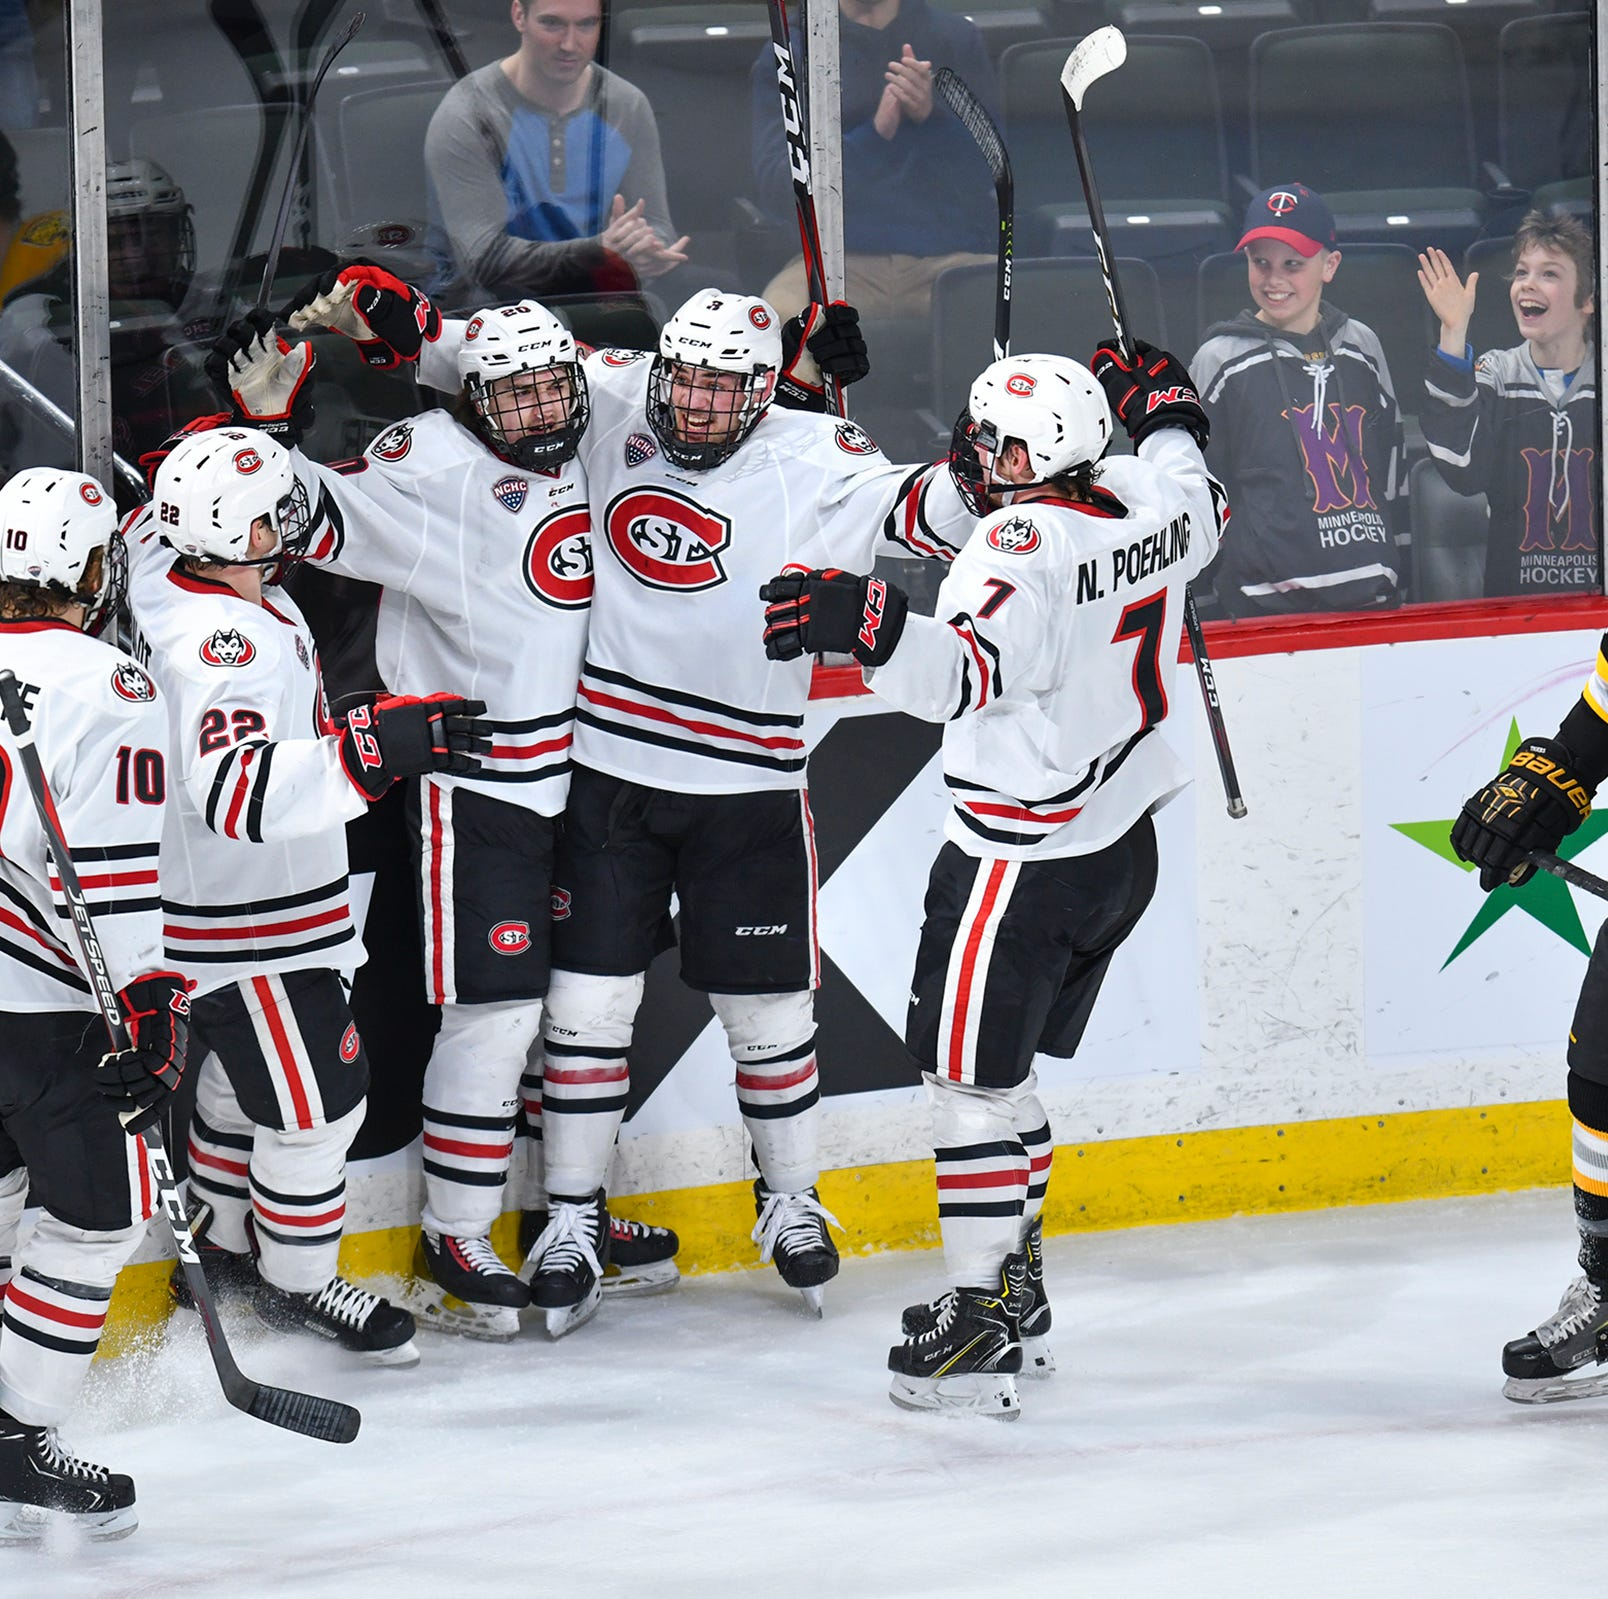 St. Cloud State players celebrate their second goal of the first period against Colorado College during the NCHC Frozen Faceoff semifinals Friday, March 22, at the Xcel Energy Center in St. Paul. St. Cloud State won 5-2 and will advance to the championship game Saturday.